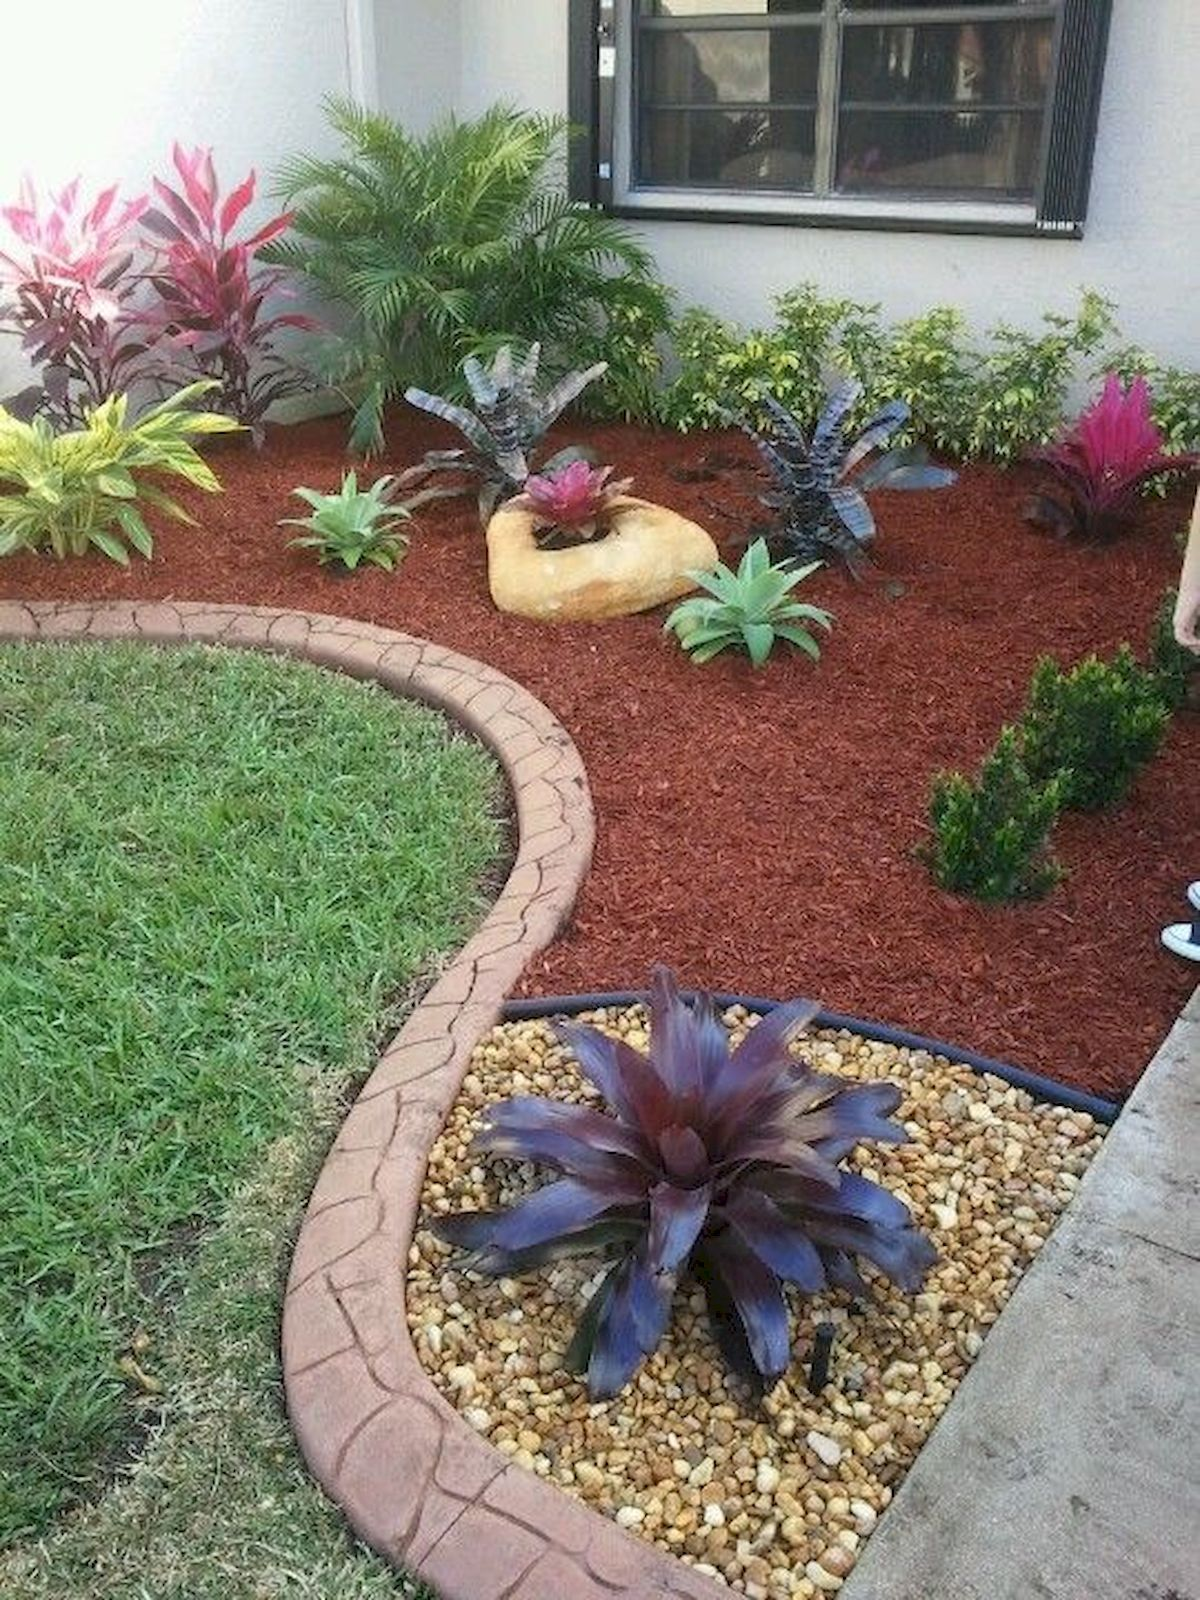 90 simple and beautiful front yard landscaping ideas on a on front yard landscaping ideas id=76846